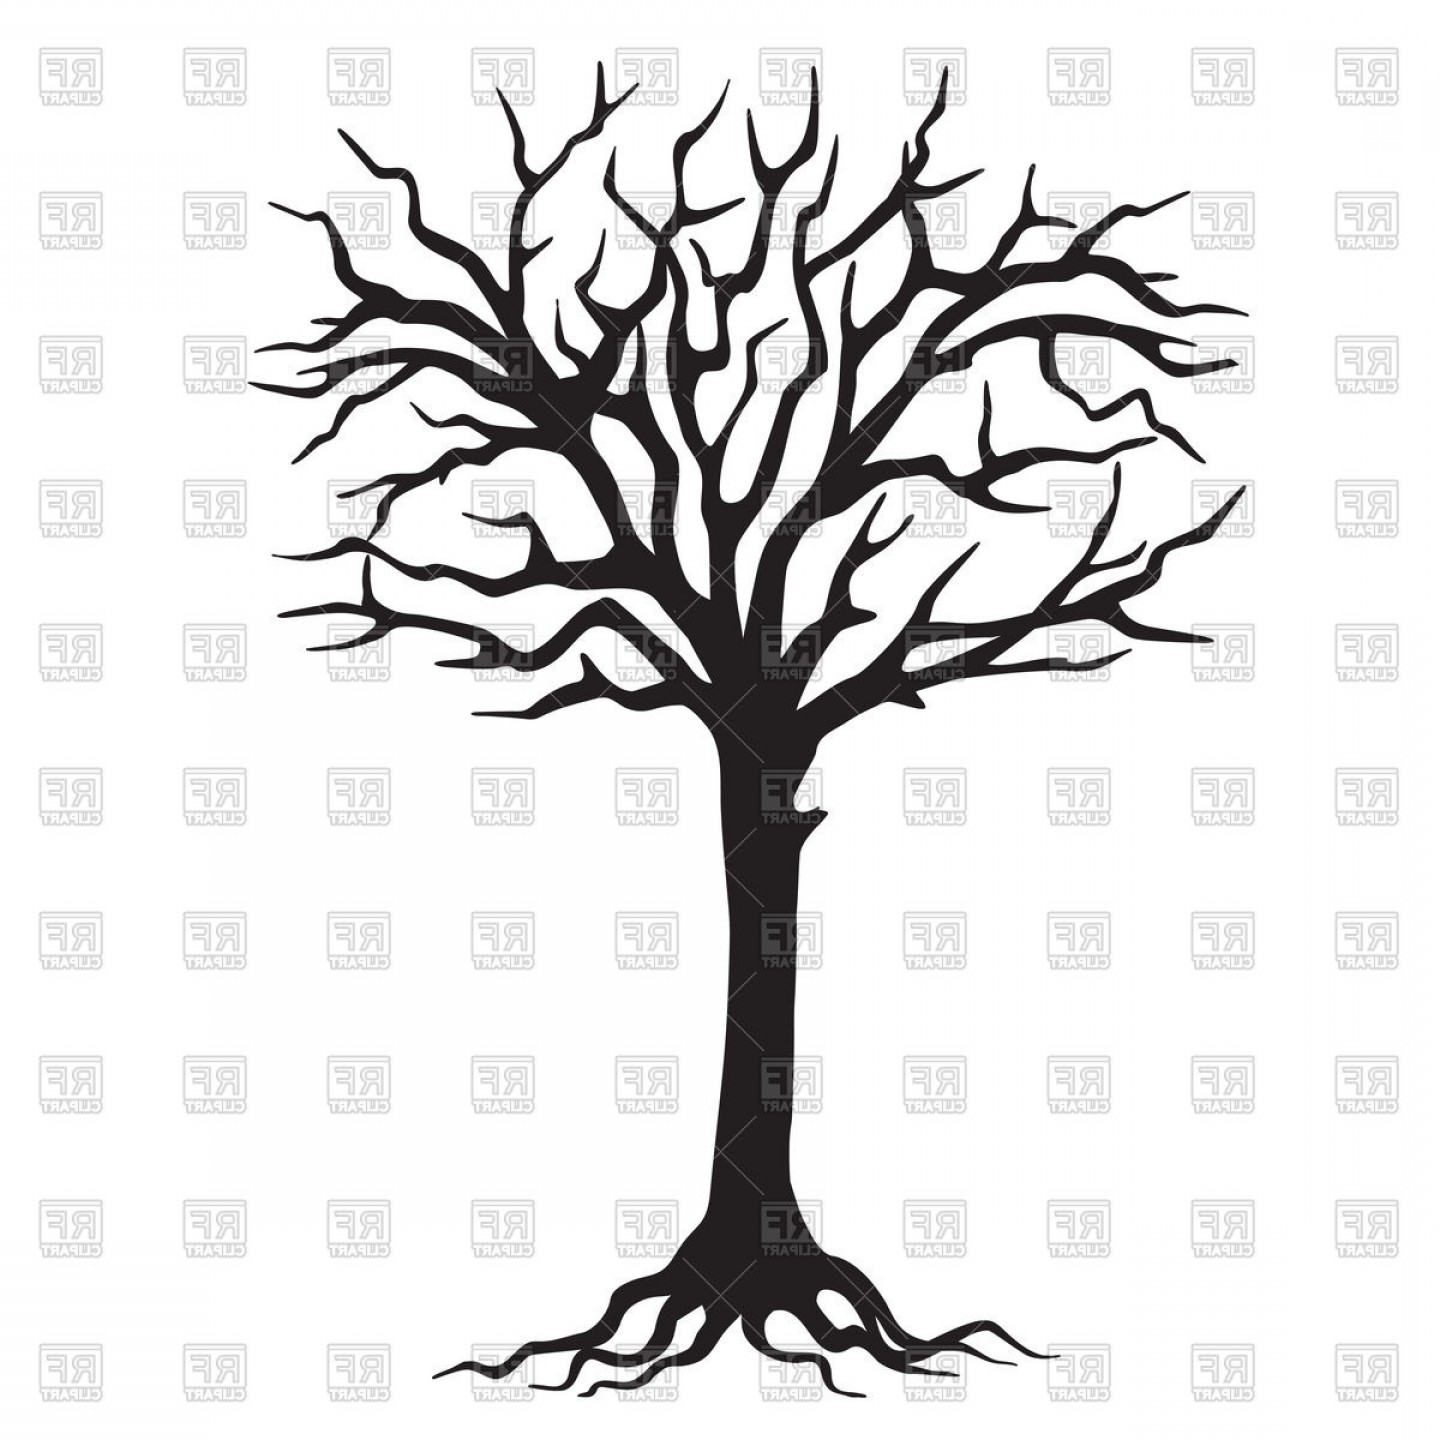 Tree Silhouette Vector Clip Art: Hand Drawn Black Silhouette Tree With Roots Vector Clipart